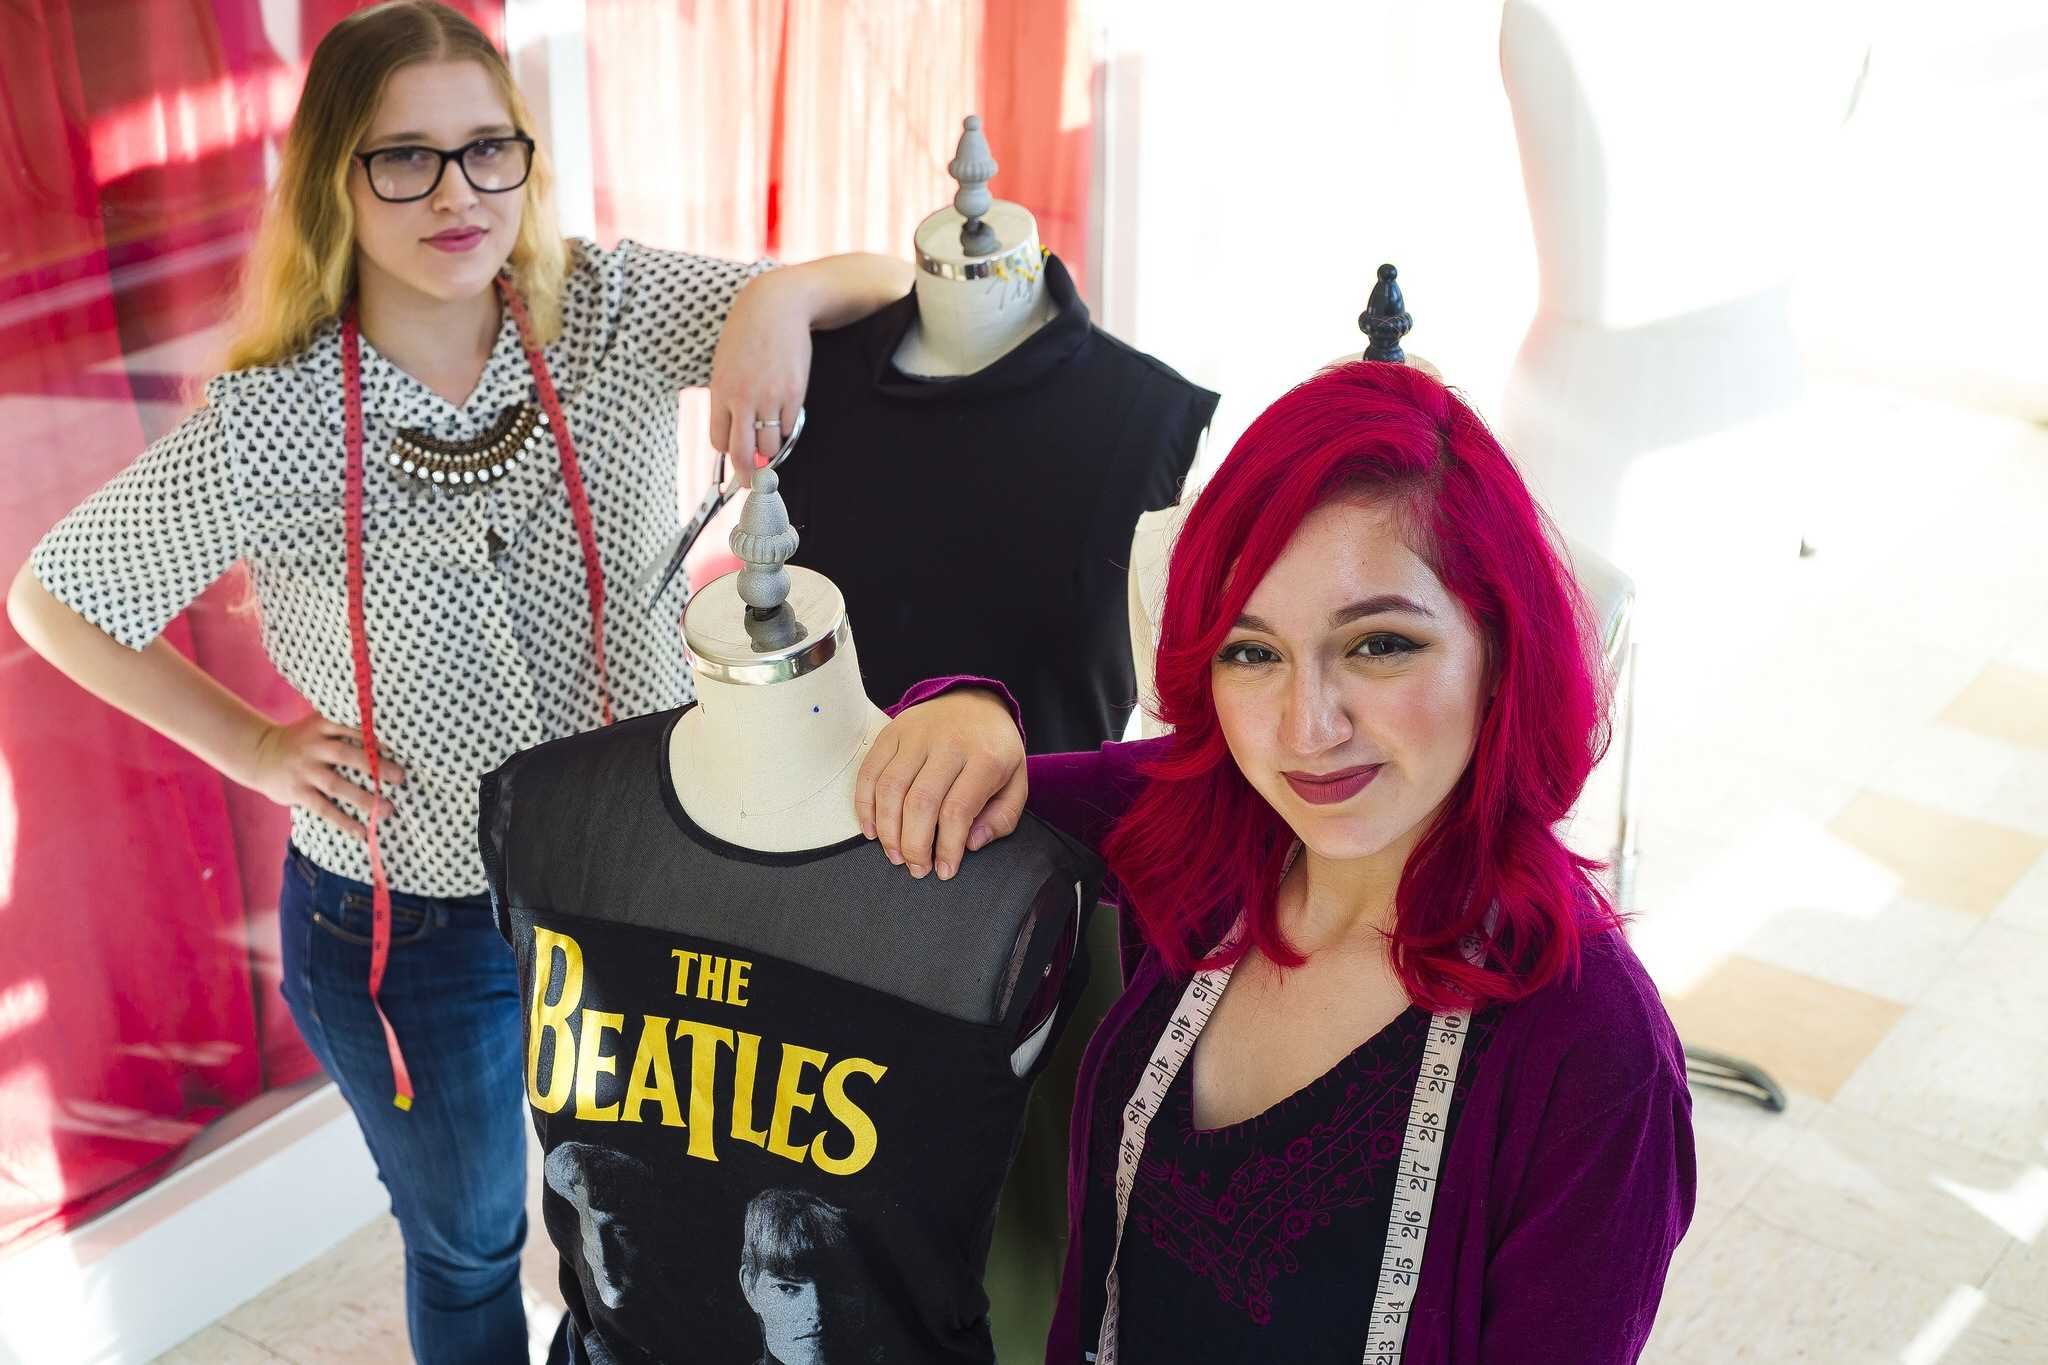 Interactive: SF State fashion students get ready for runway